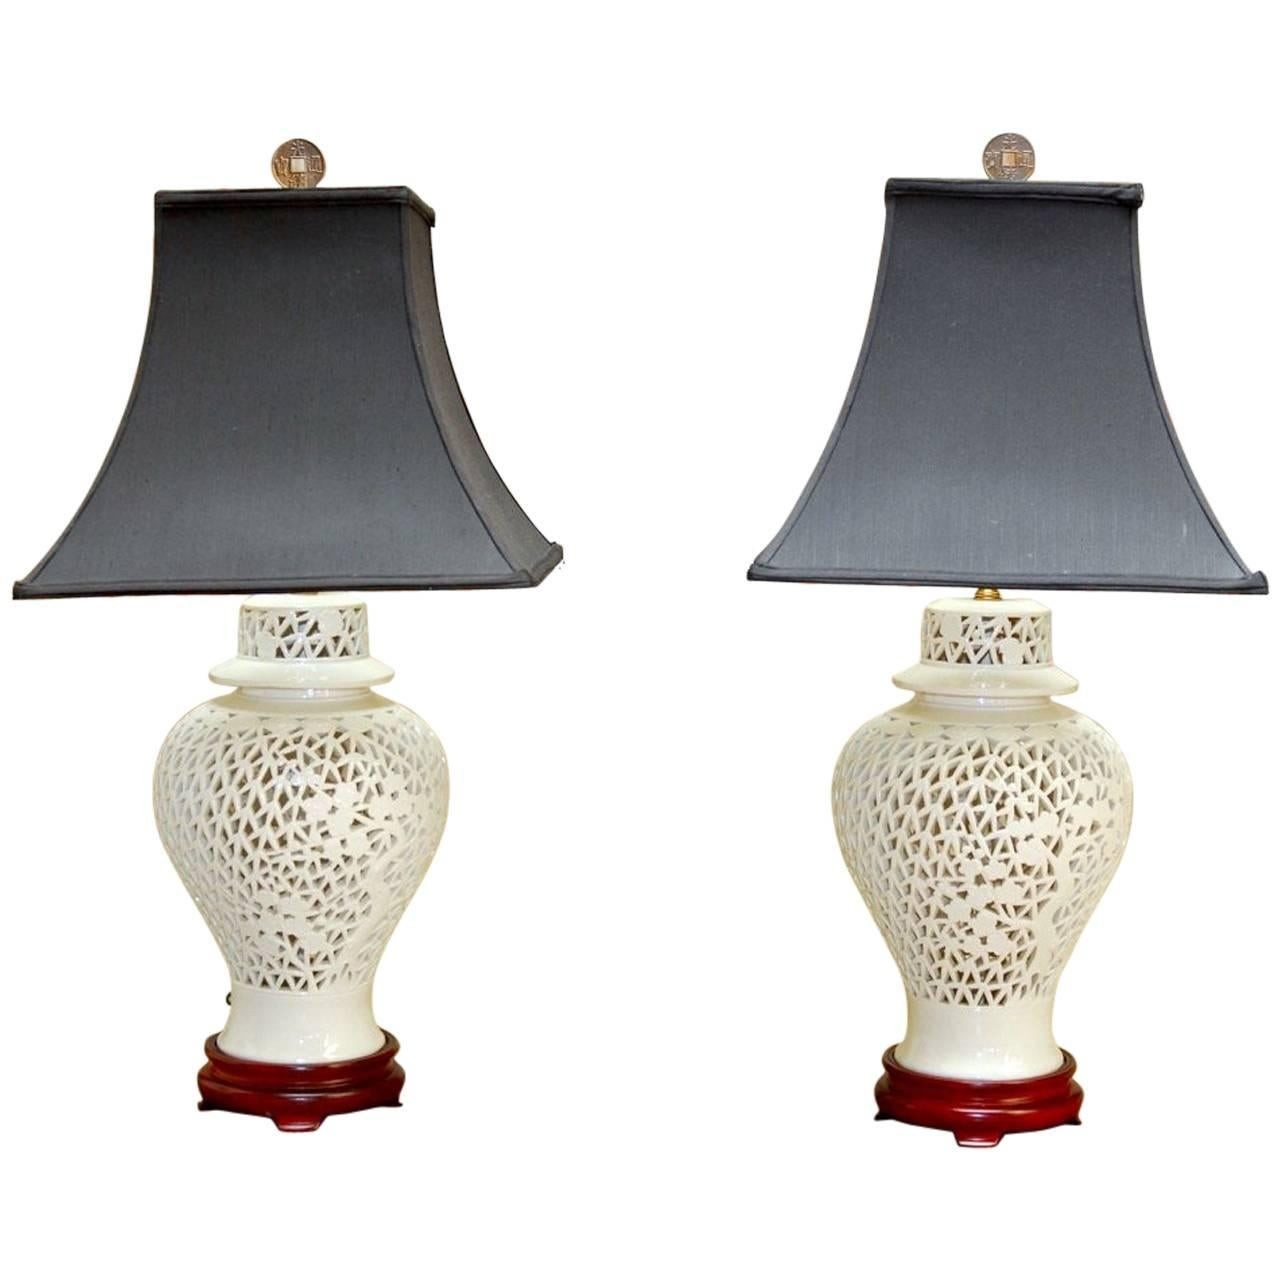 Pair of Blanc de Chine Porcelain Ginger Jar Table Lamps For Sale at